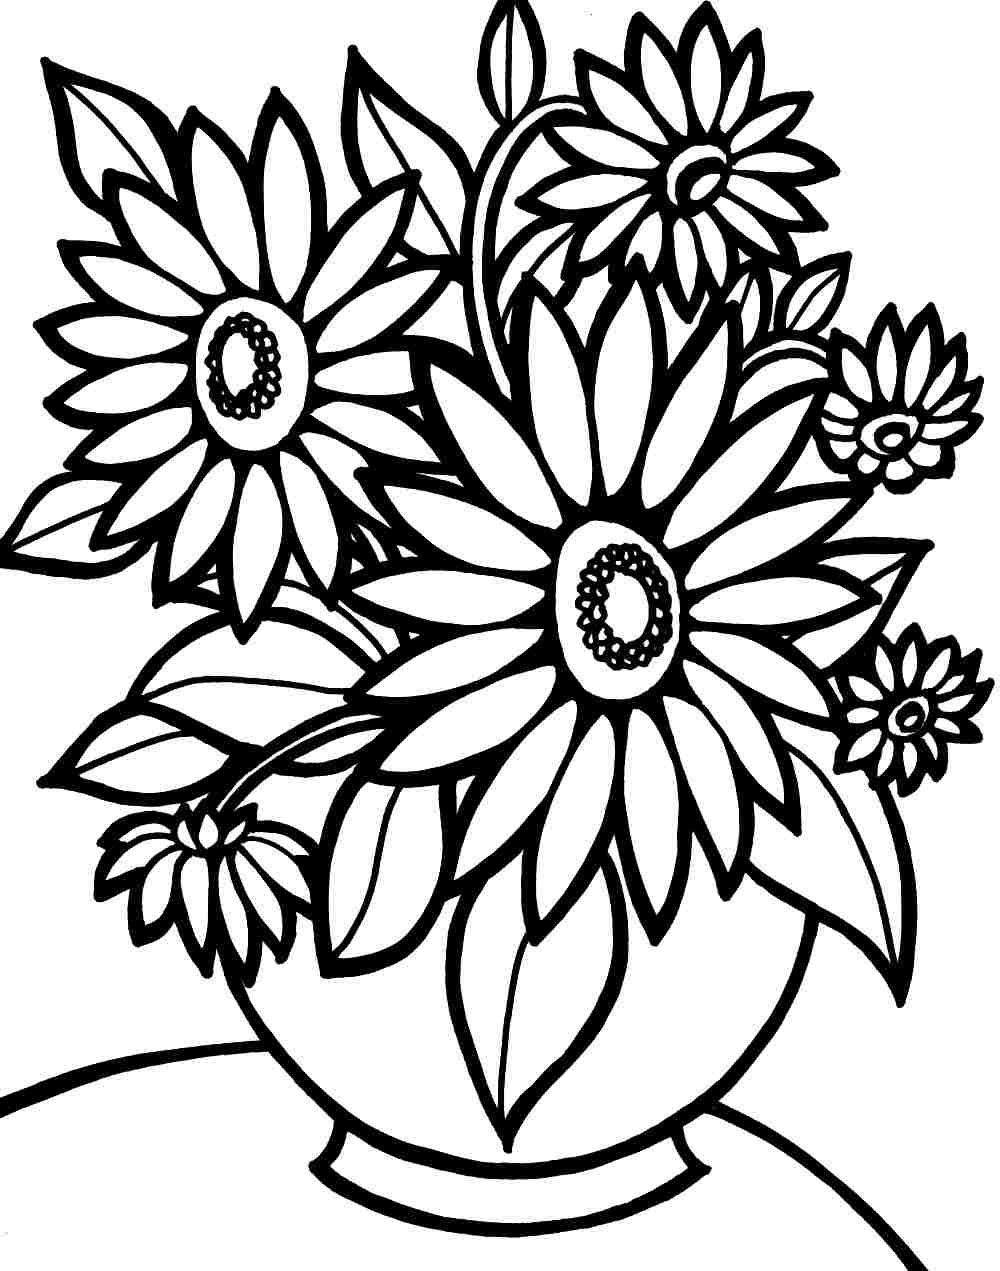 Coloring pages of flowers printable free - Flower Coloring Pages Printable Free Free Printable Adult Coloring Pages Flower Coloring Pages Pictures